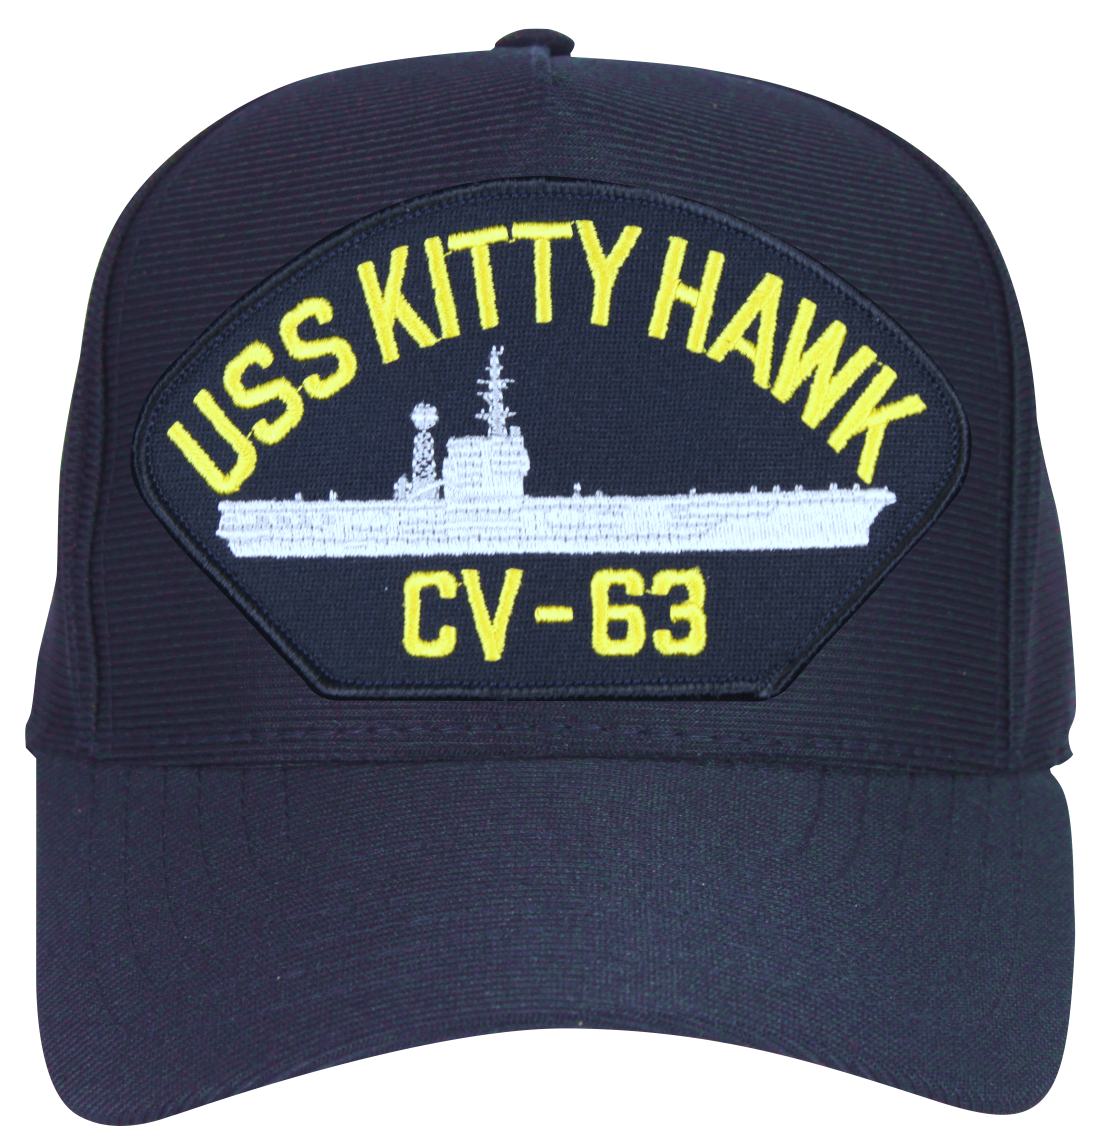 uss kitty hawk cv